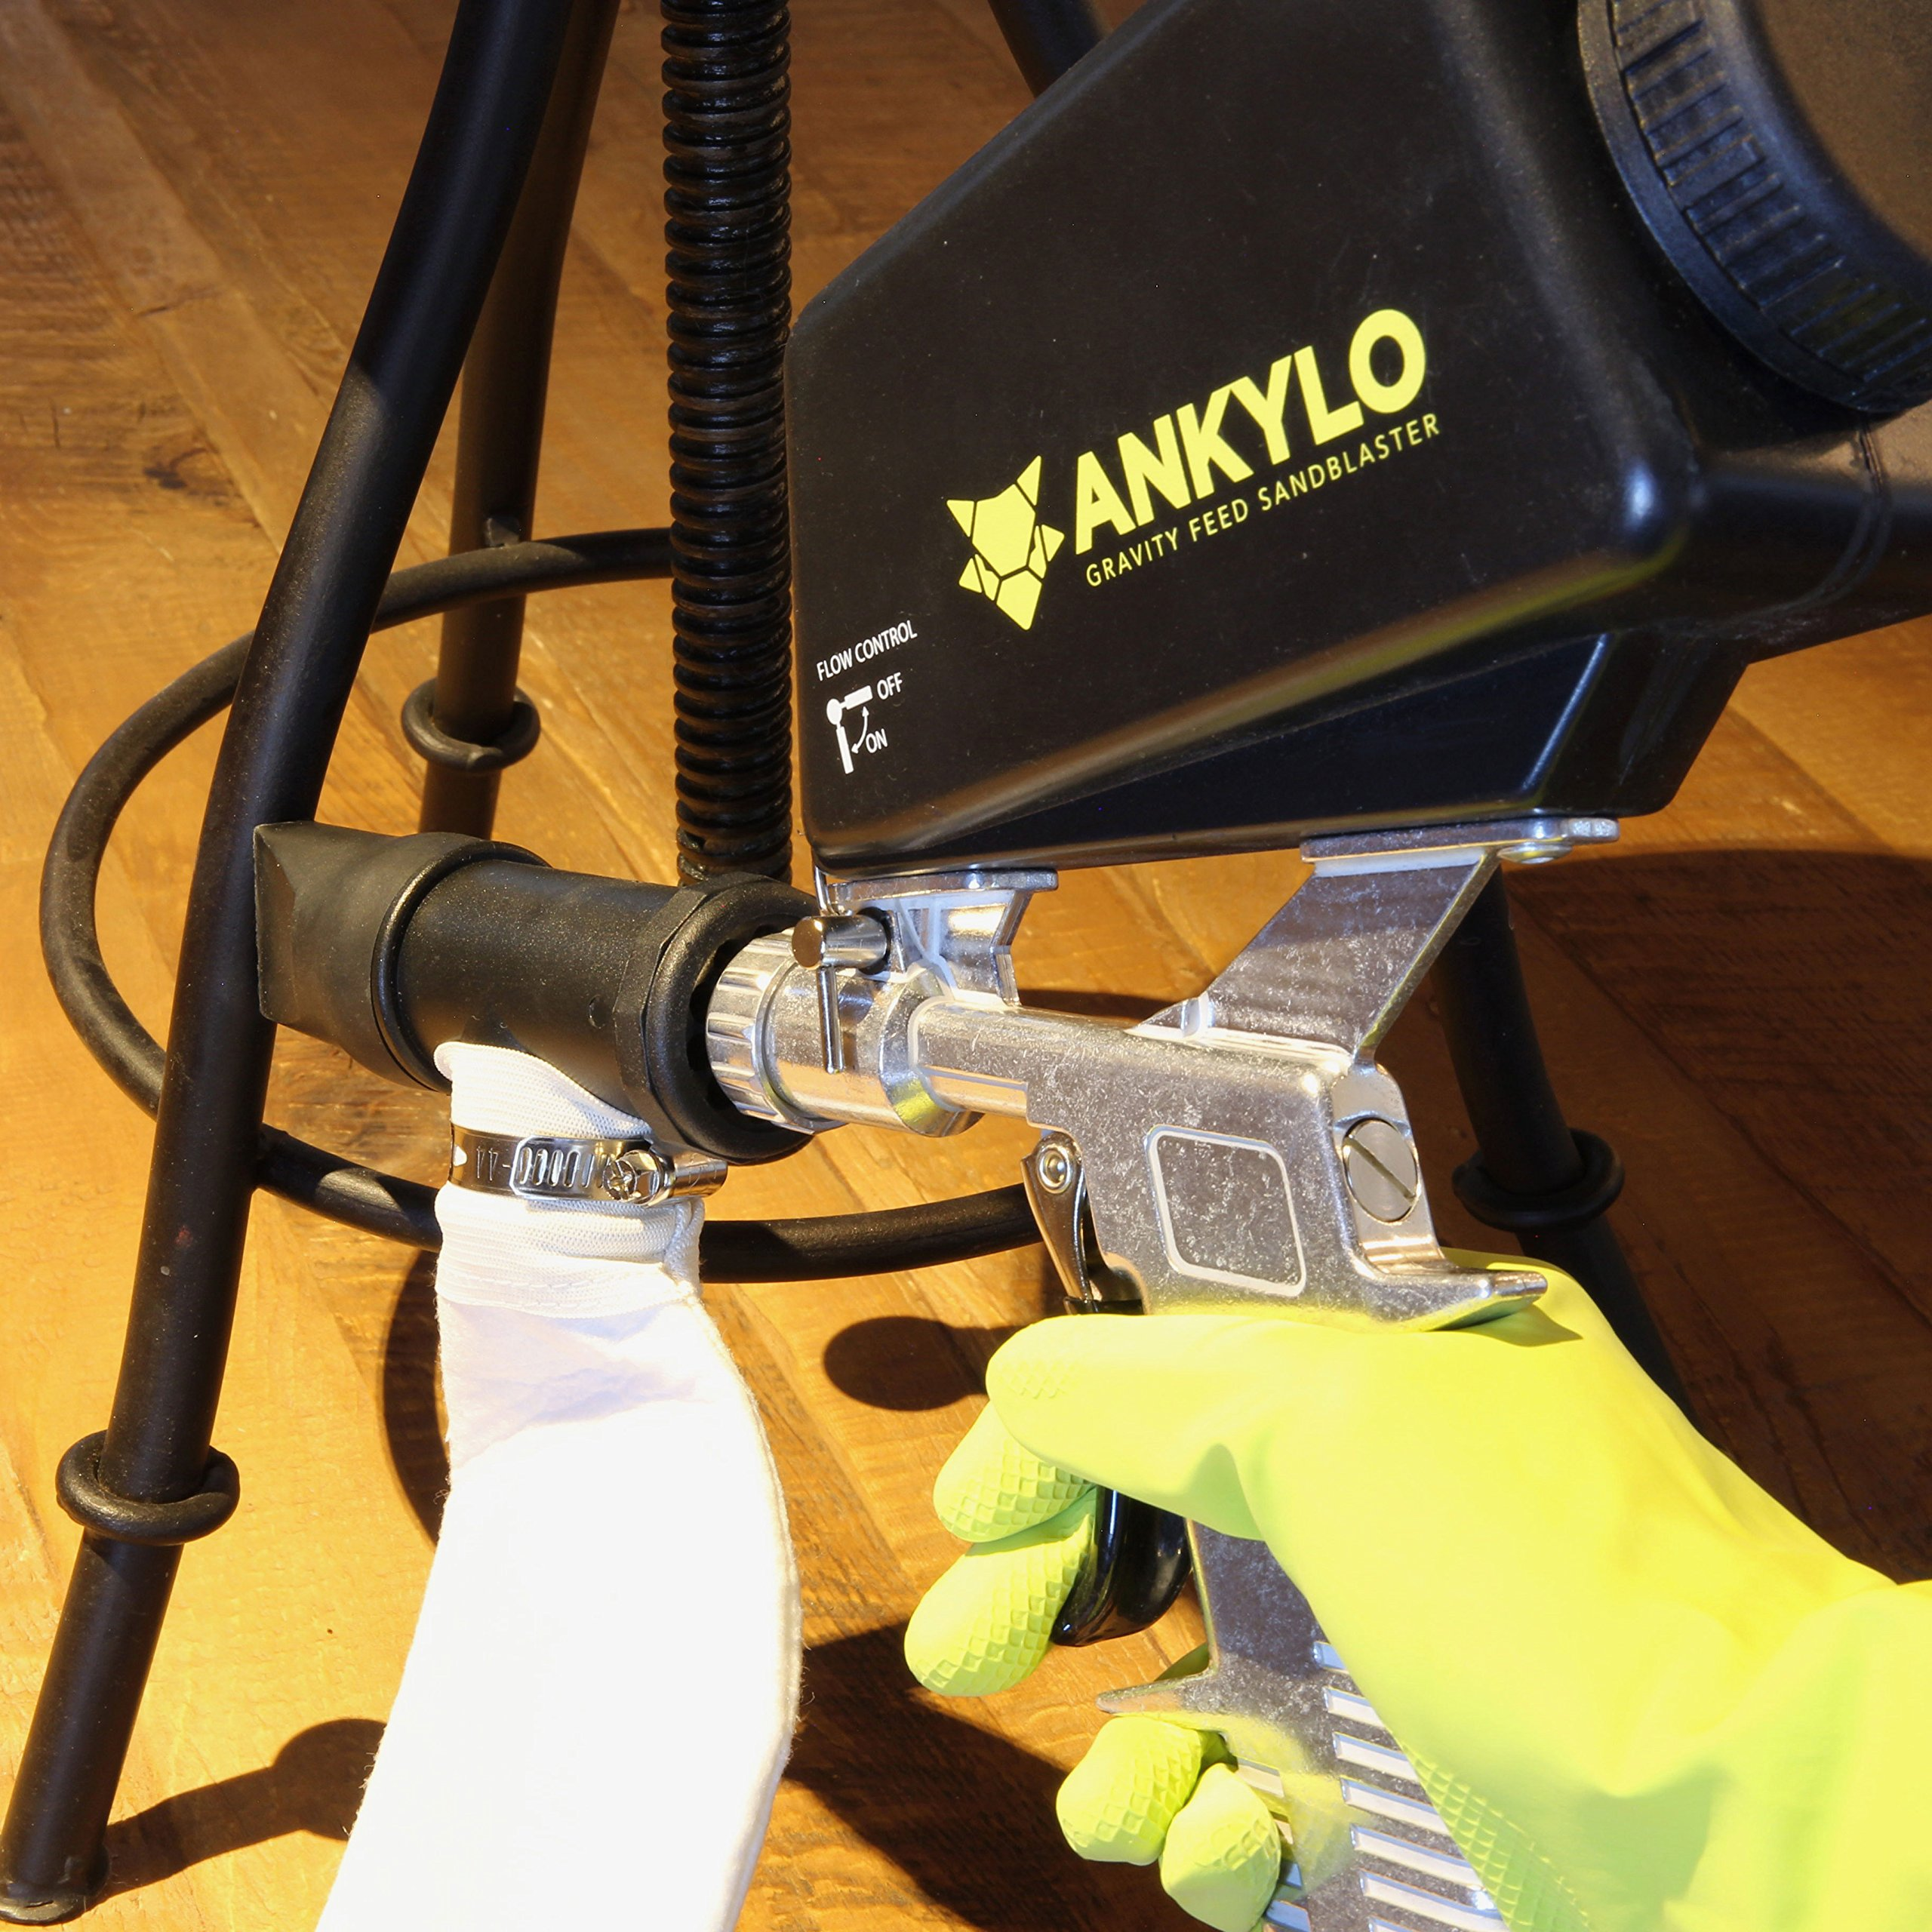 Gravity Sandblaster Gun - Durable Metal - Handheld and Portable with bonus Spot Blasting Kit - Remove Rust & Paint, Clean Tools & Parts, Create Art by ANKYLO Tools (Image #3)